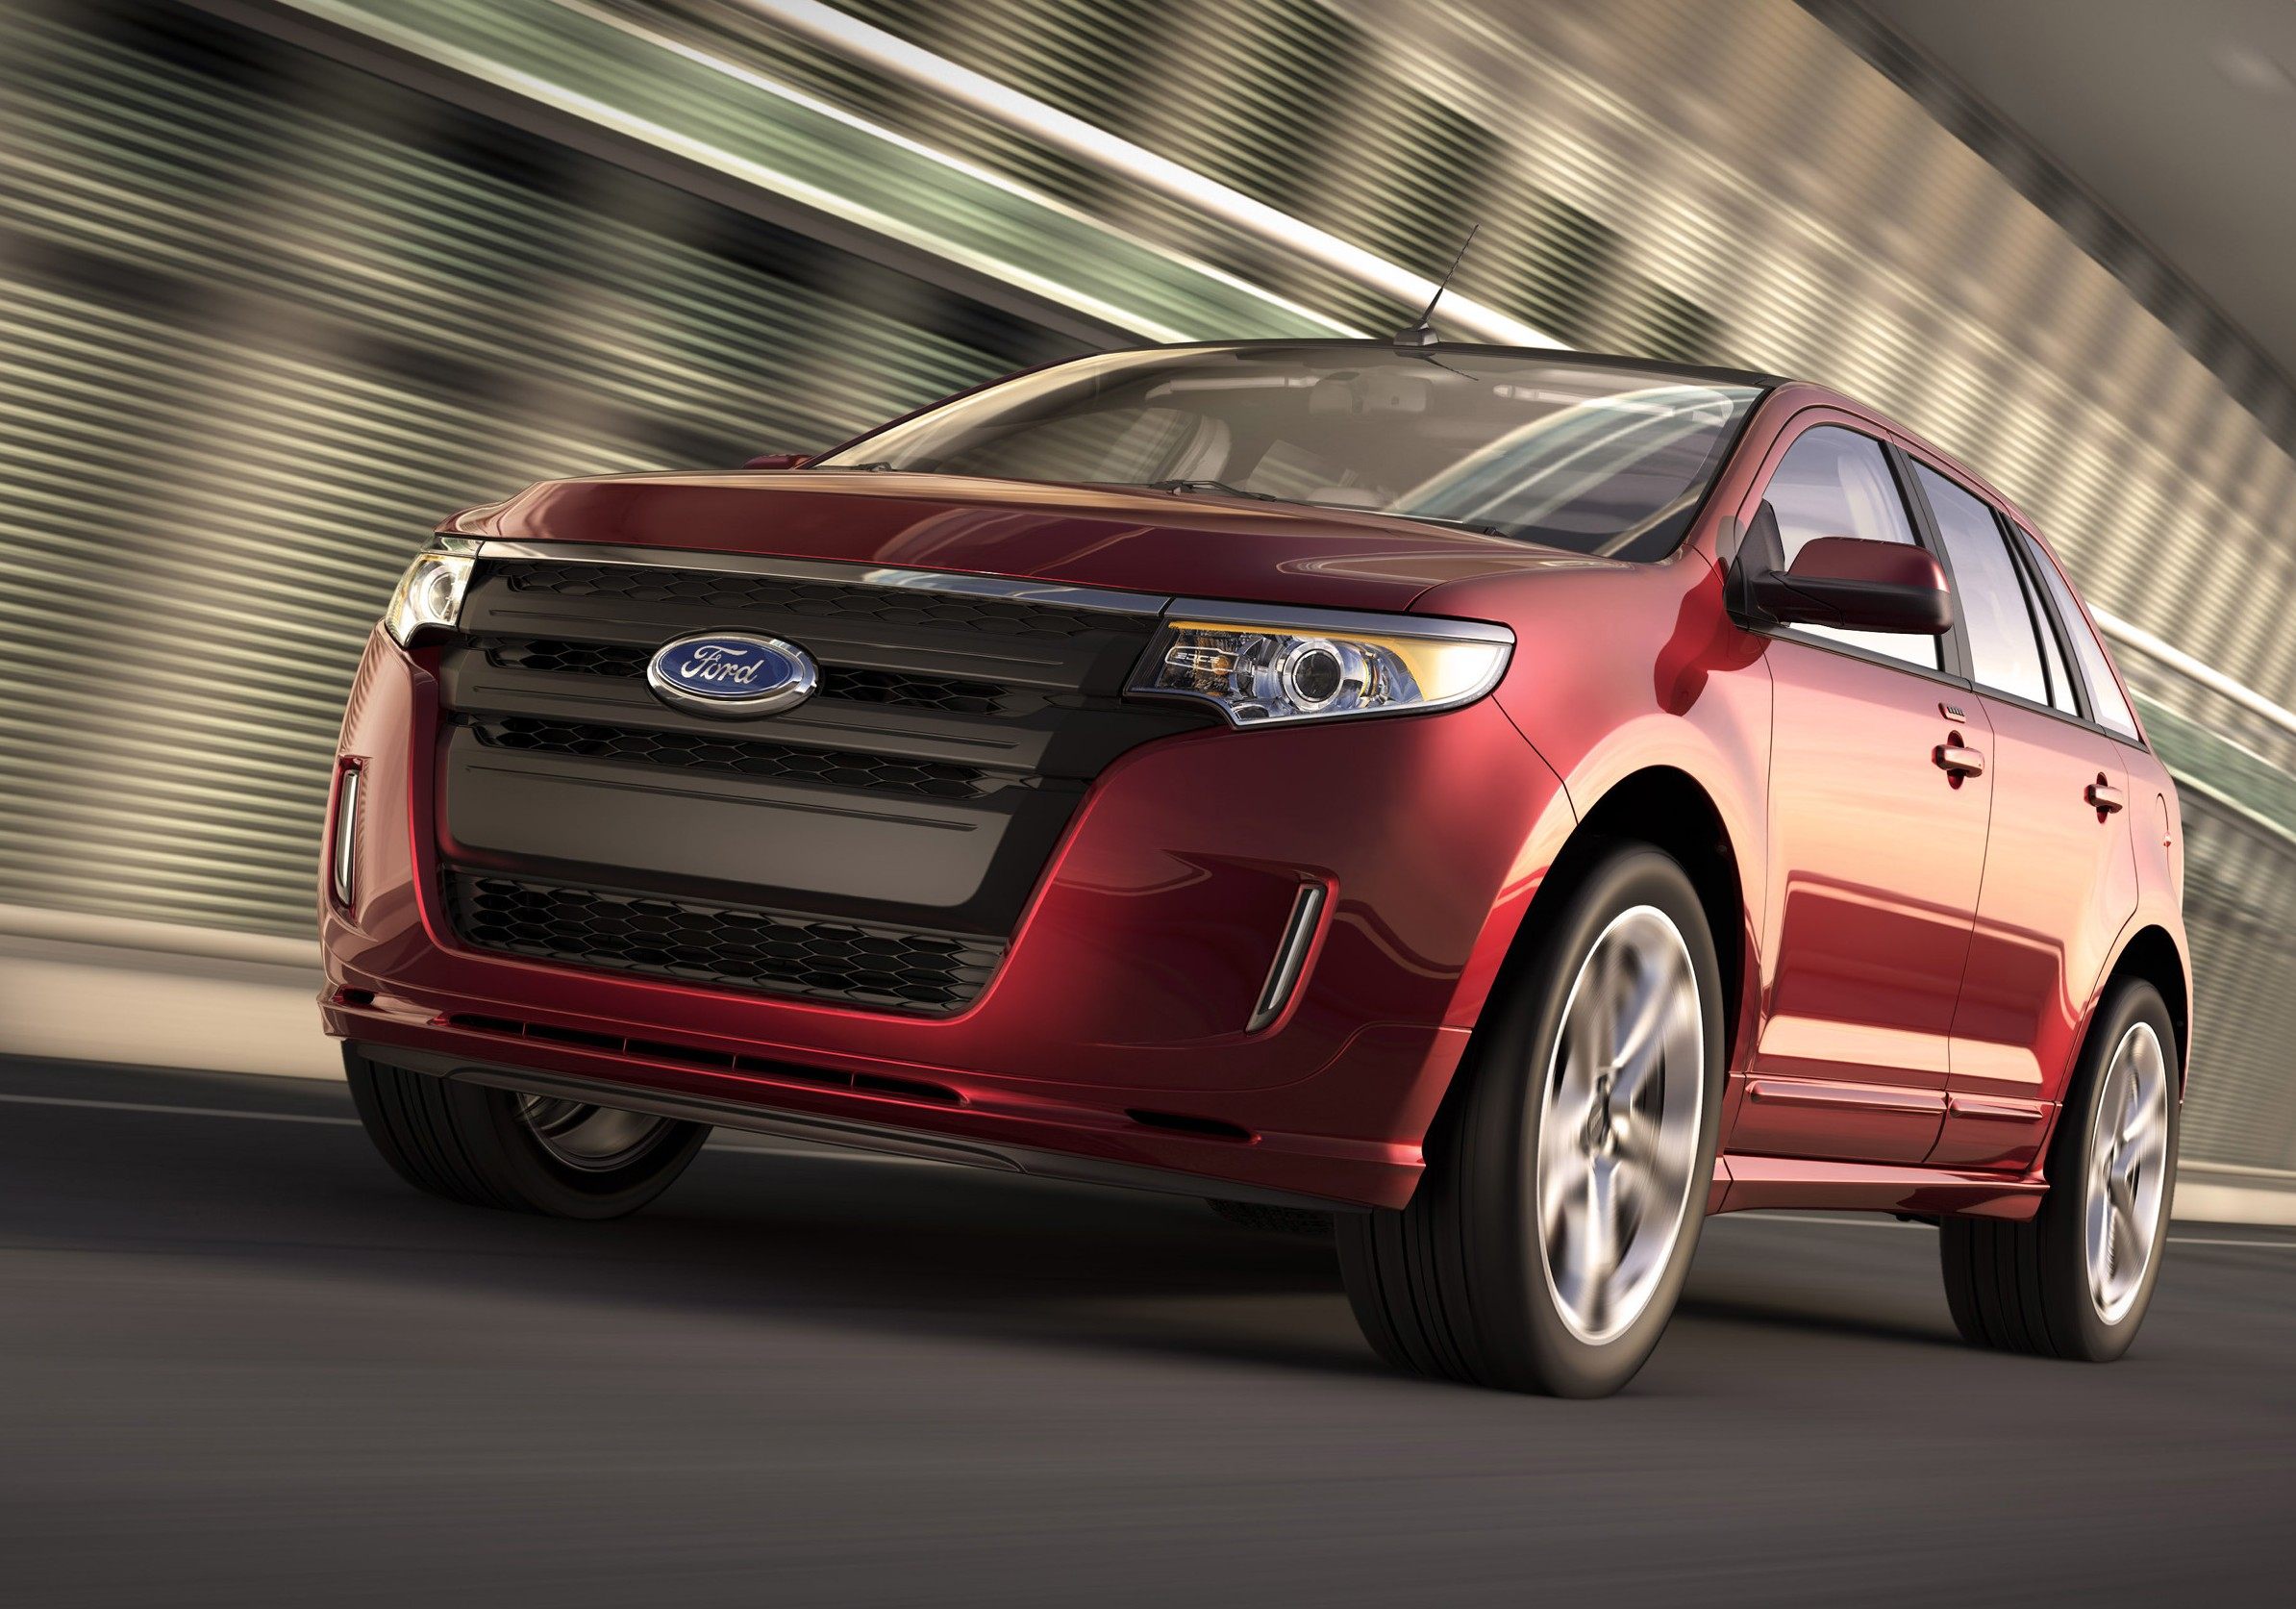 2014 ford edge gas mileage the car connection. Black Bedroom Furniture Sets. Home Design Ideas